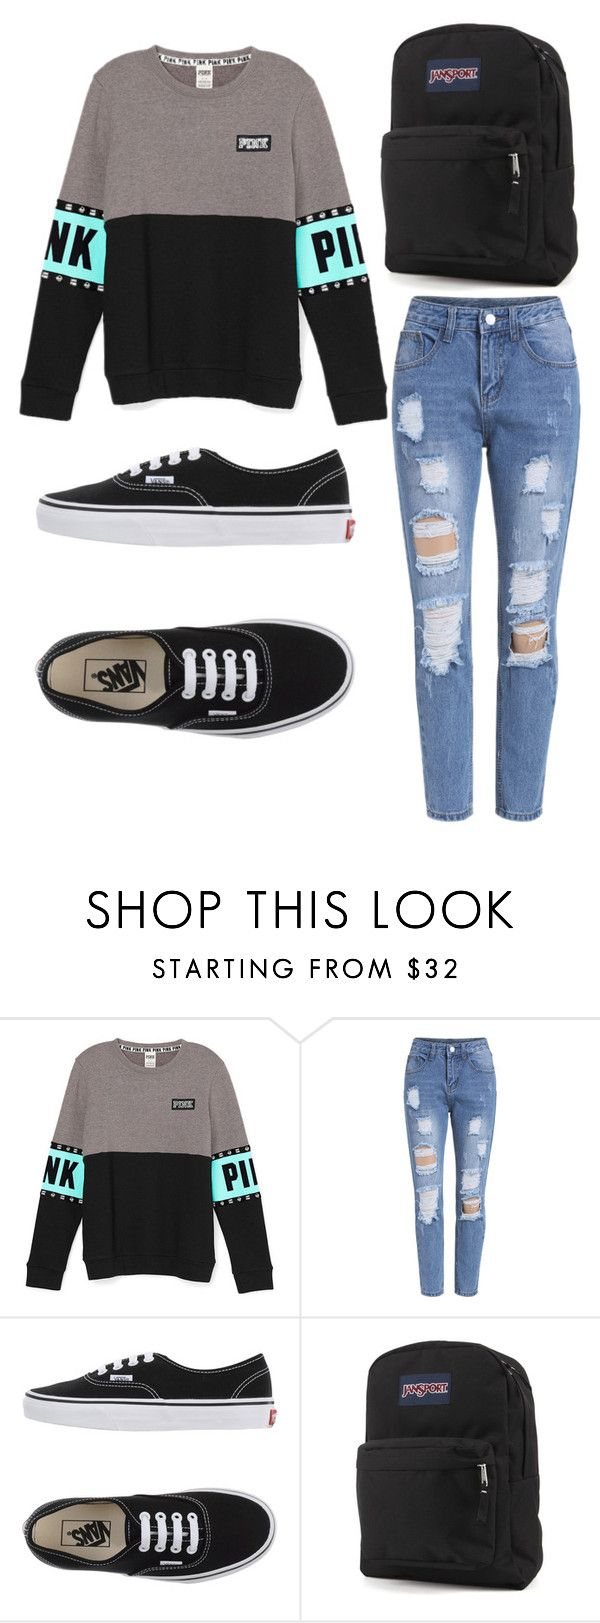 """""""School Comfy"""" by oliviamca ❤ liked on Polyvore featuring Vans, JanSport, women's clothing, women's fashion, women, female, woman, misses and juniors"""